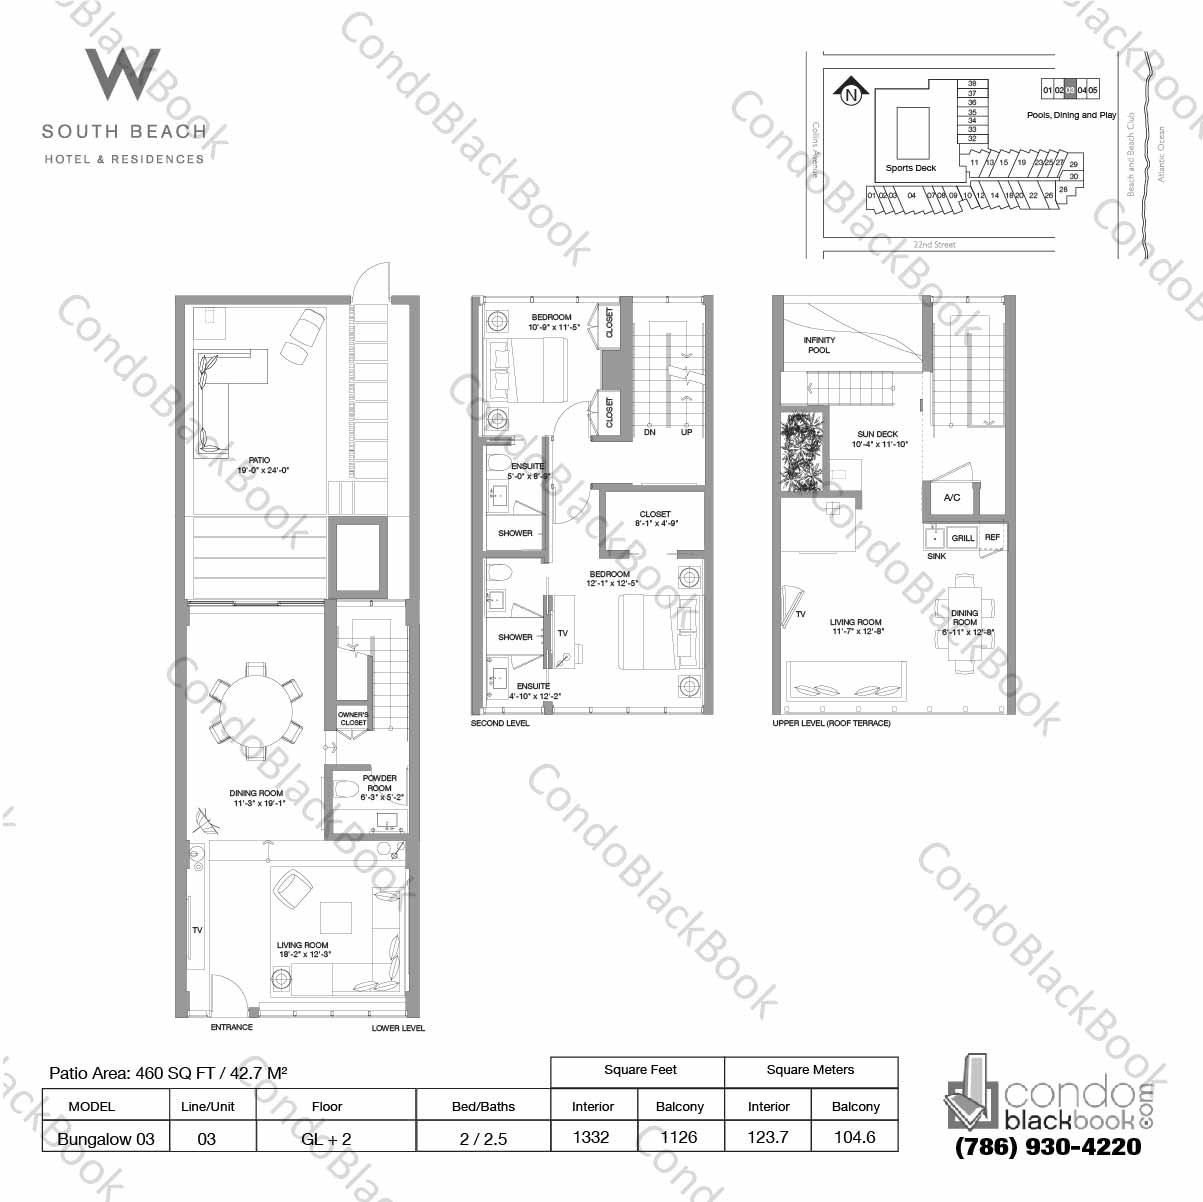 Floor plan for W South Beach South Beach Miami Beach, model Bungalow 03, line 03, 2 / 2.5 bedrooms, 1332 sq ft